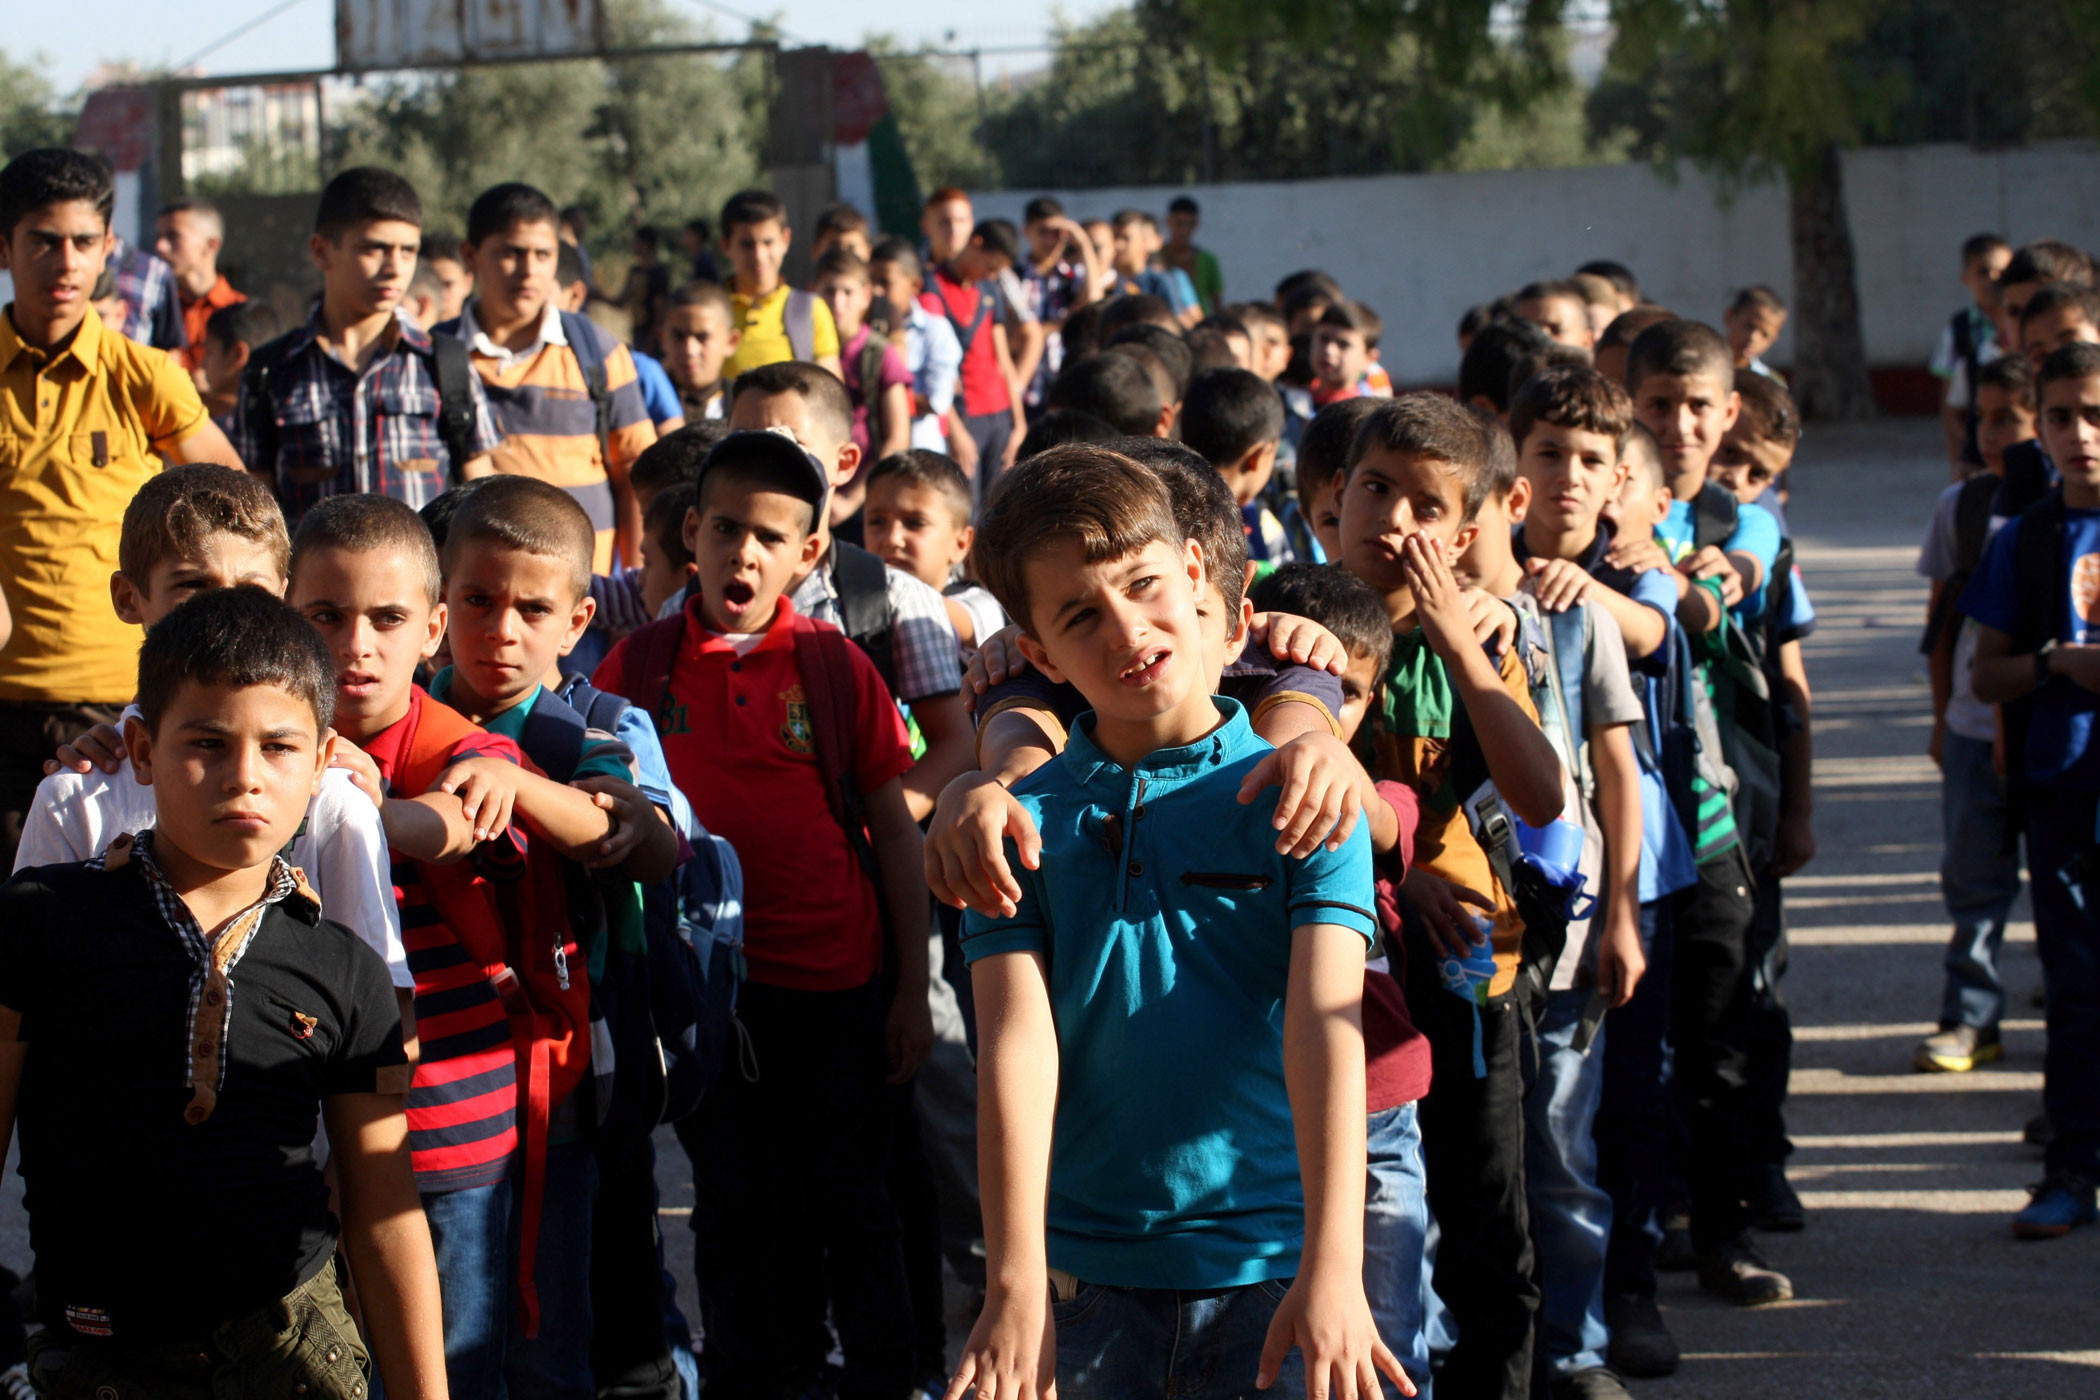 Palestinian students return back to their school in the morning of the first day of the new school year in the West Bank city of Nablus, on Aug. 24, 2014